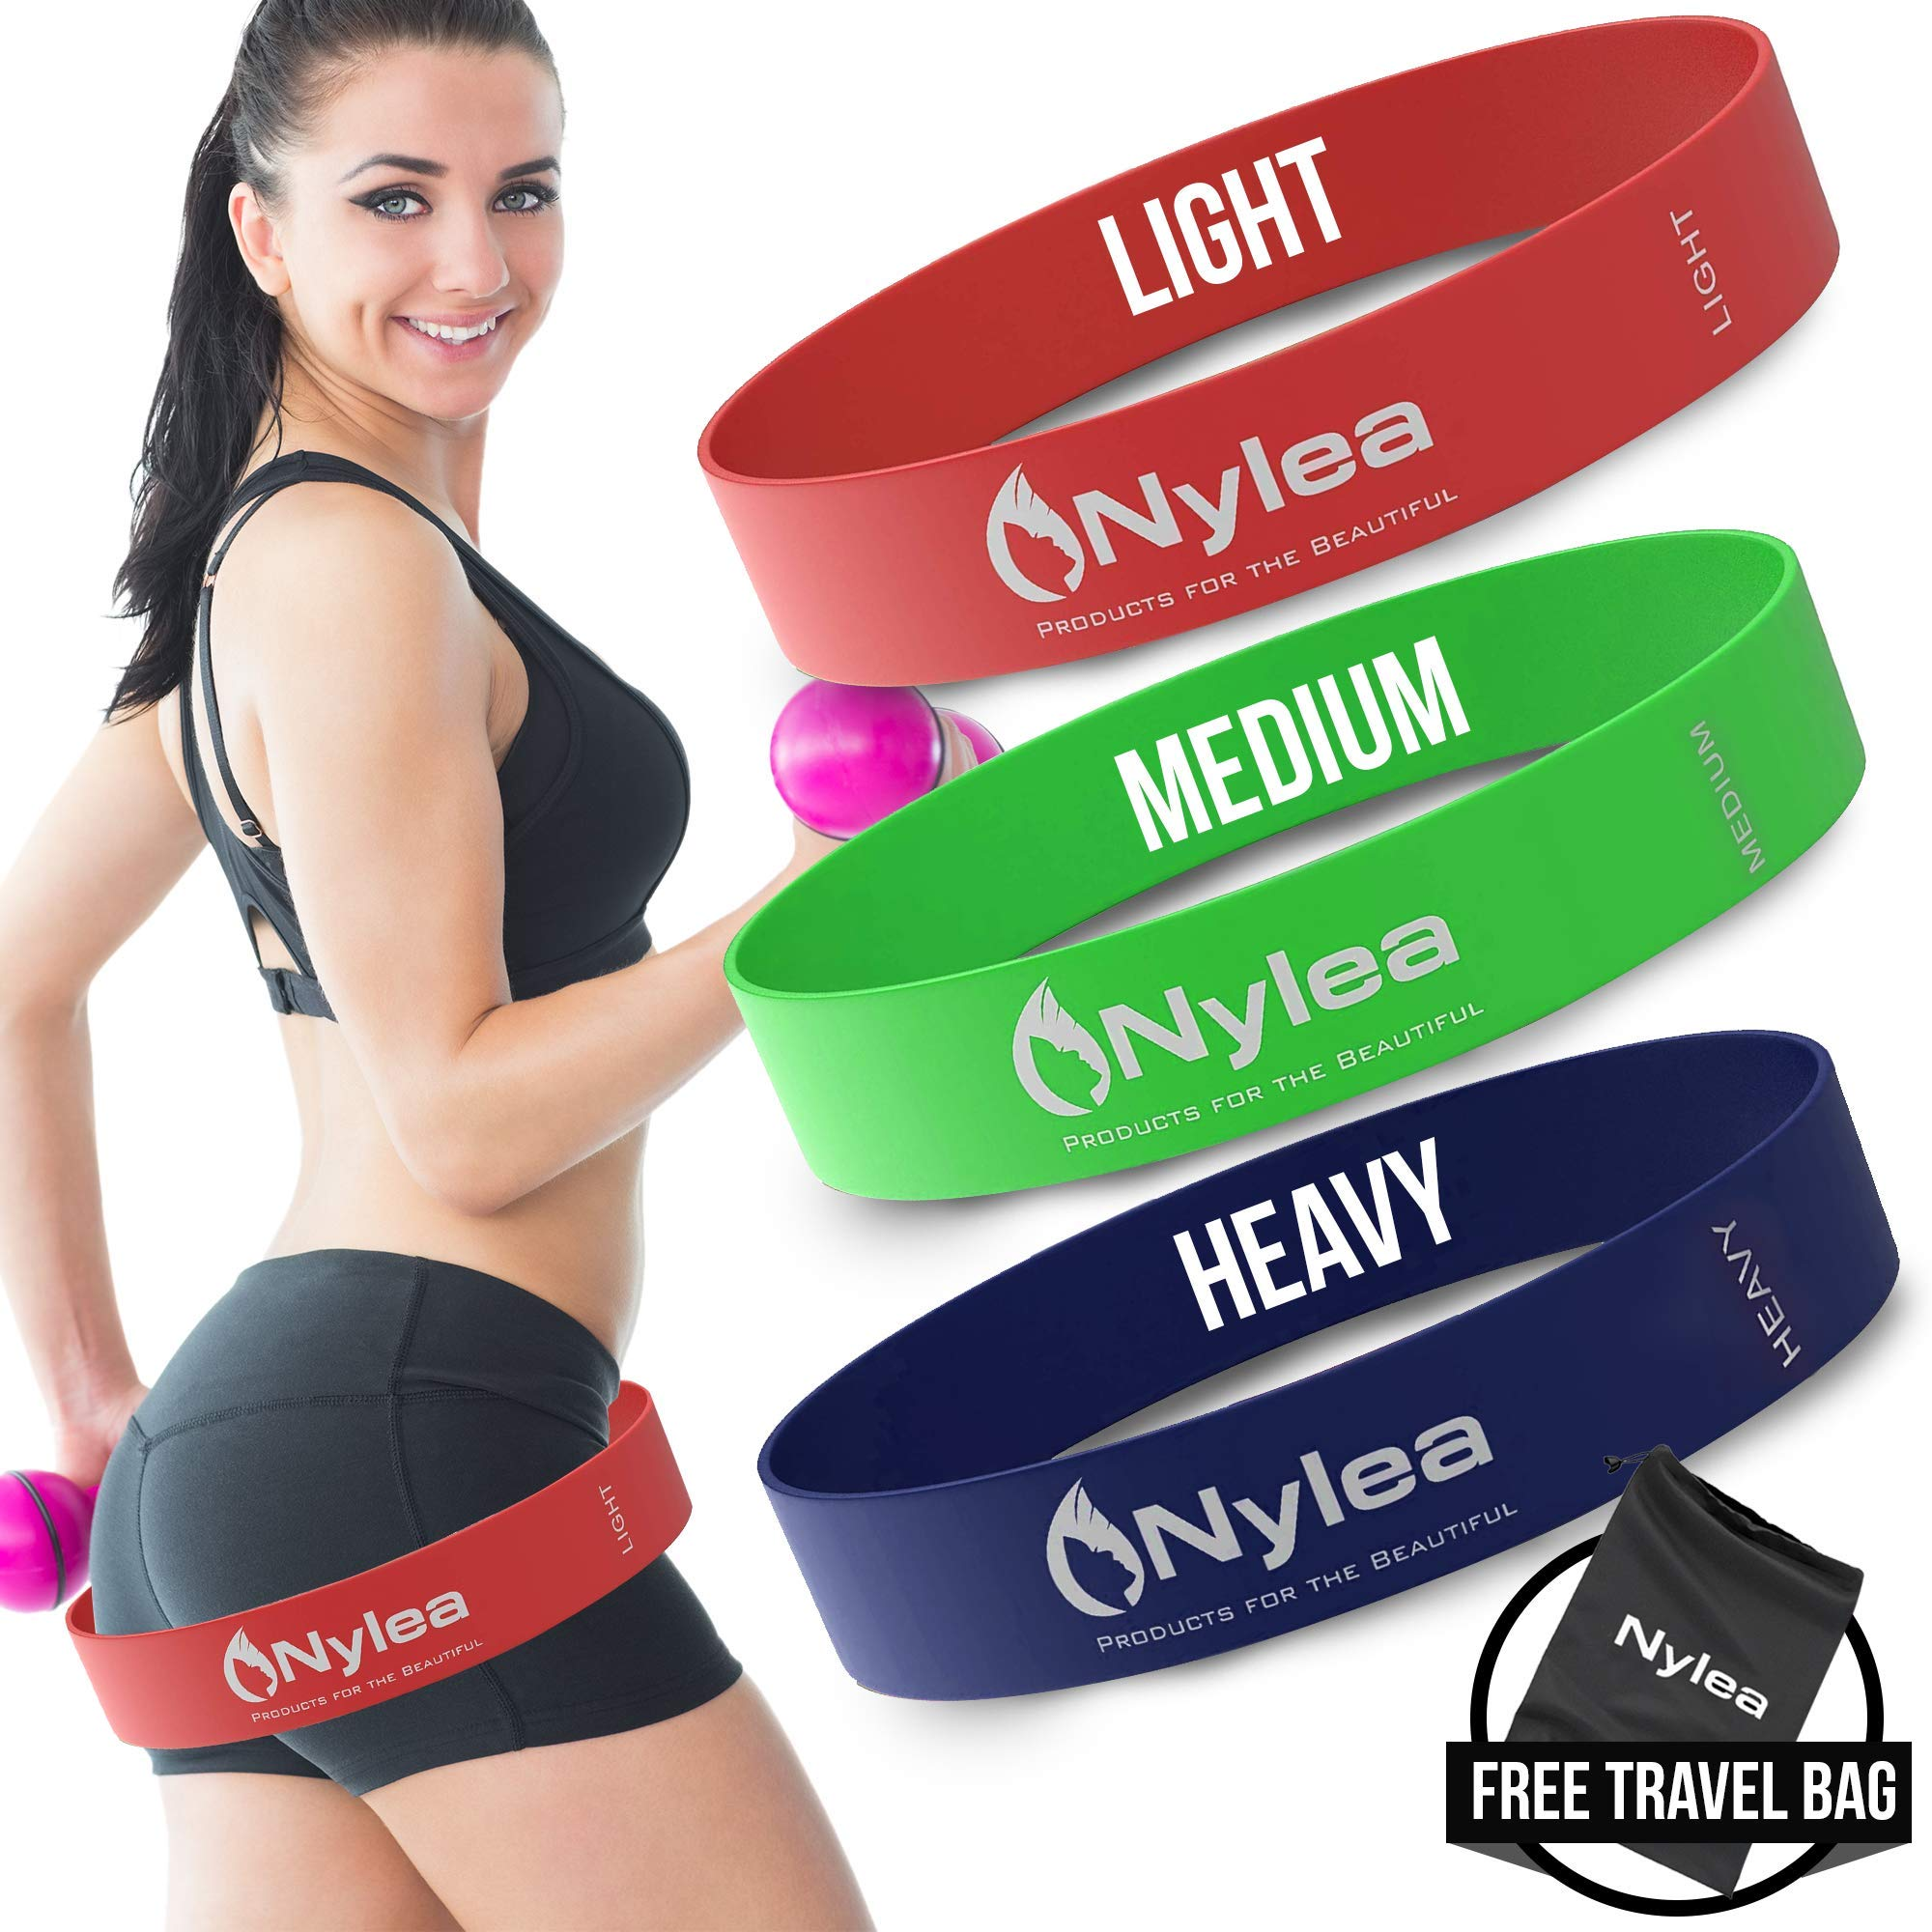 Nylea 3 Pack Resistance Exercise Workout Bands [Free Travel Bag] 12″ Latex – Best for Training, Pilates, kPowerlifting, Stretching, Physical Therapy, Yoga, Rehab and Home Fitness